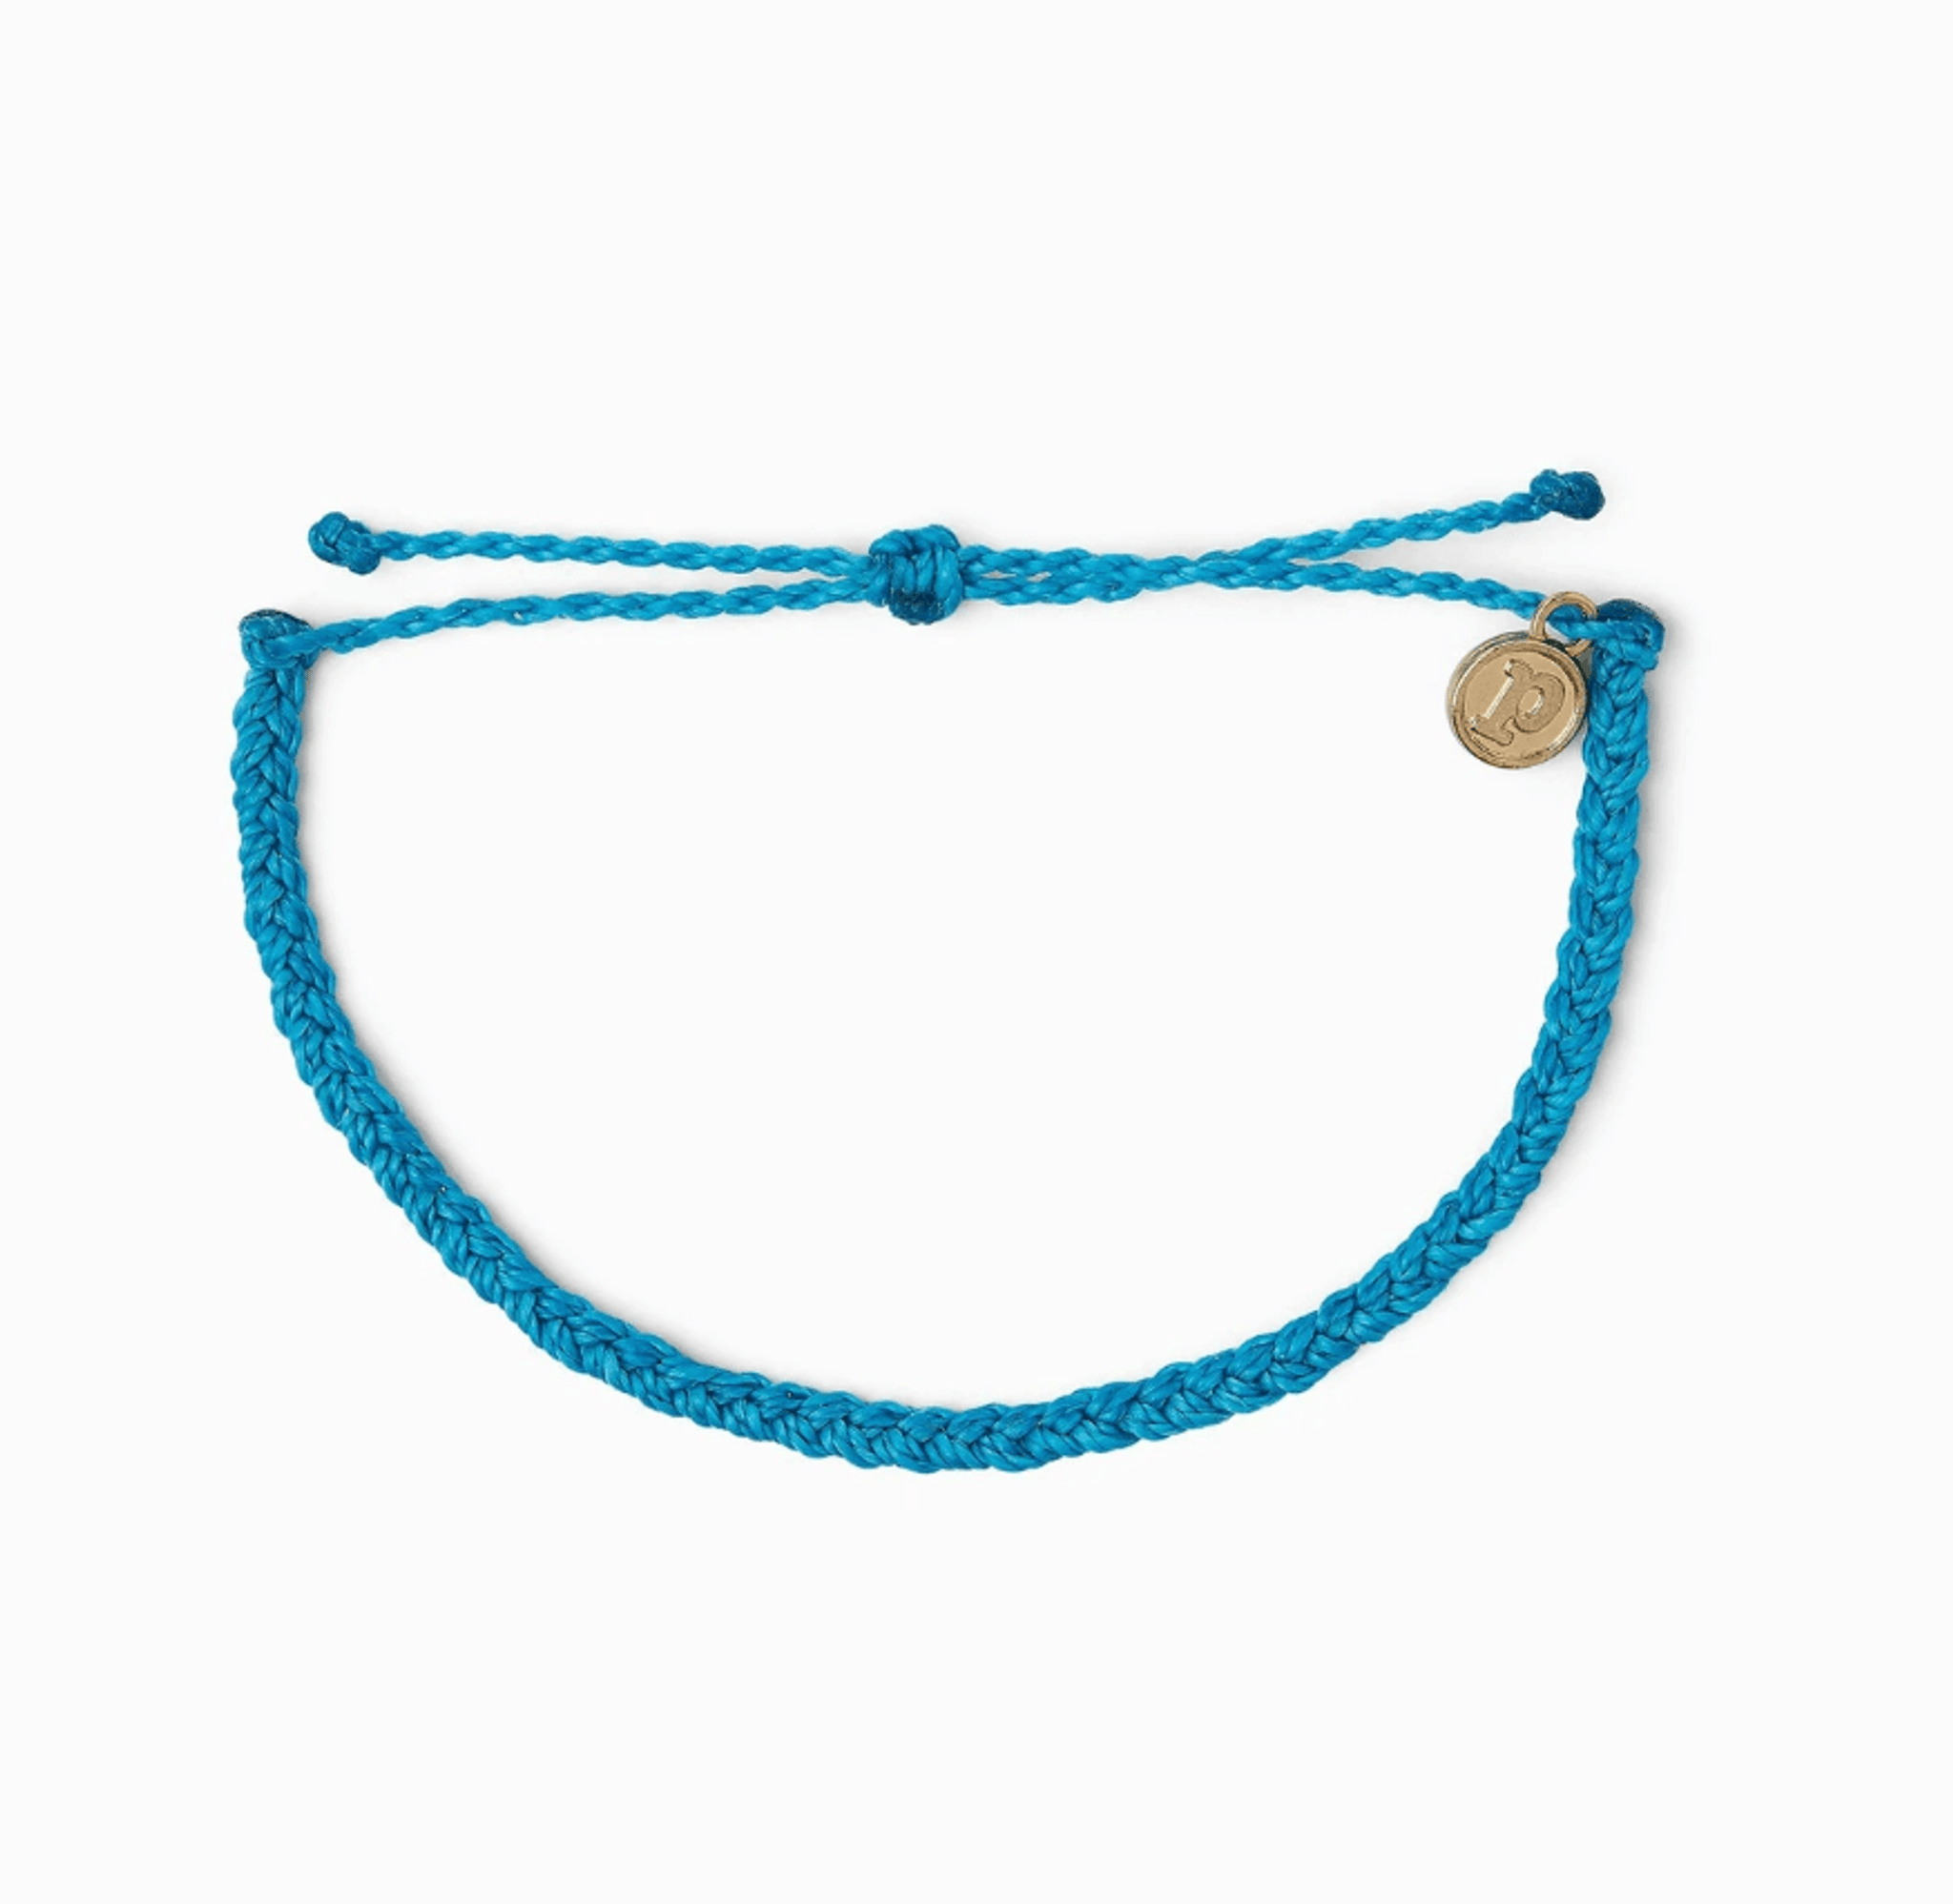 Braided Bracelet - Neon Blue